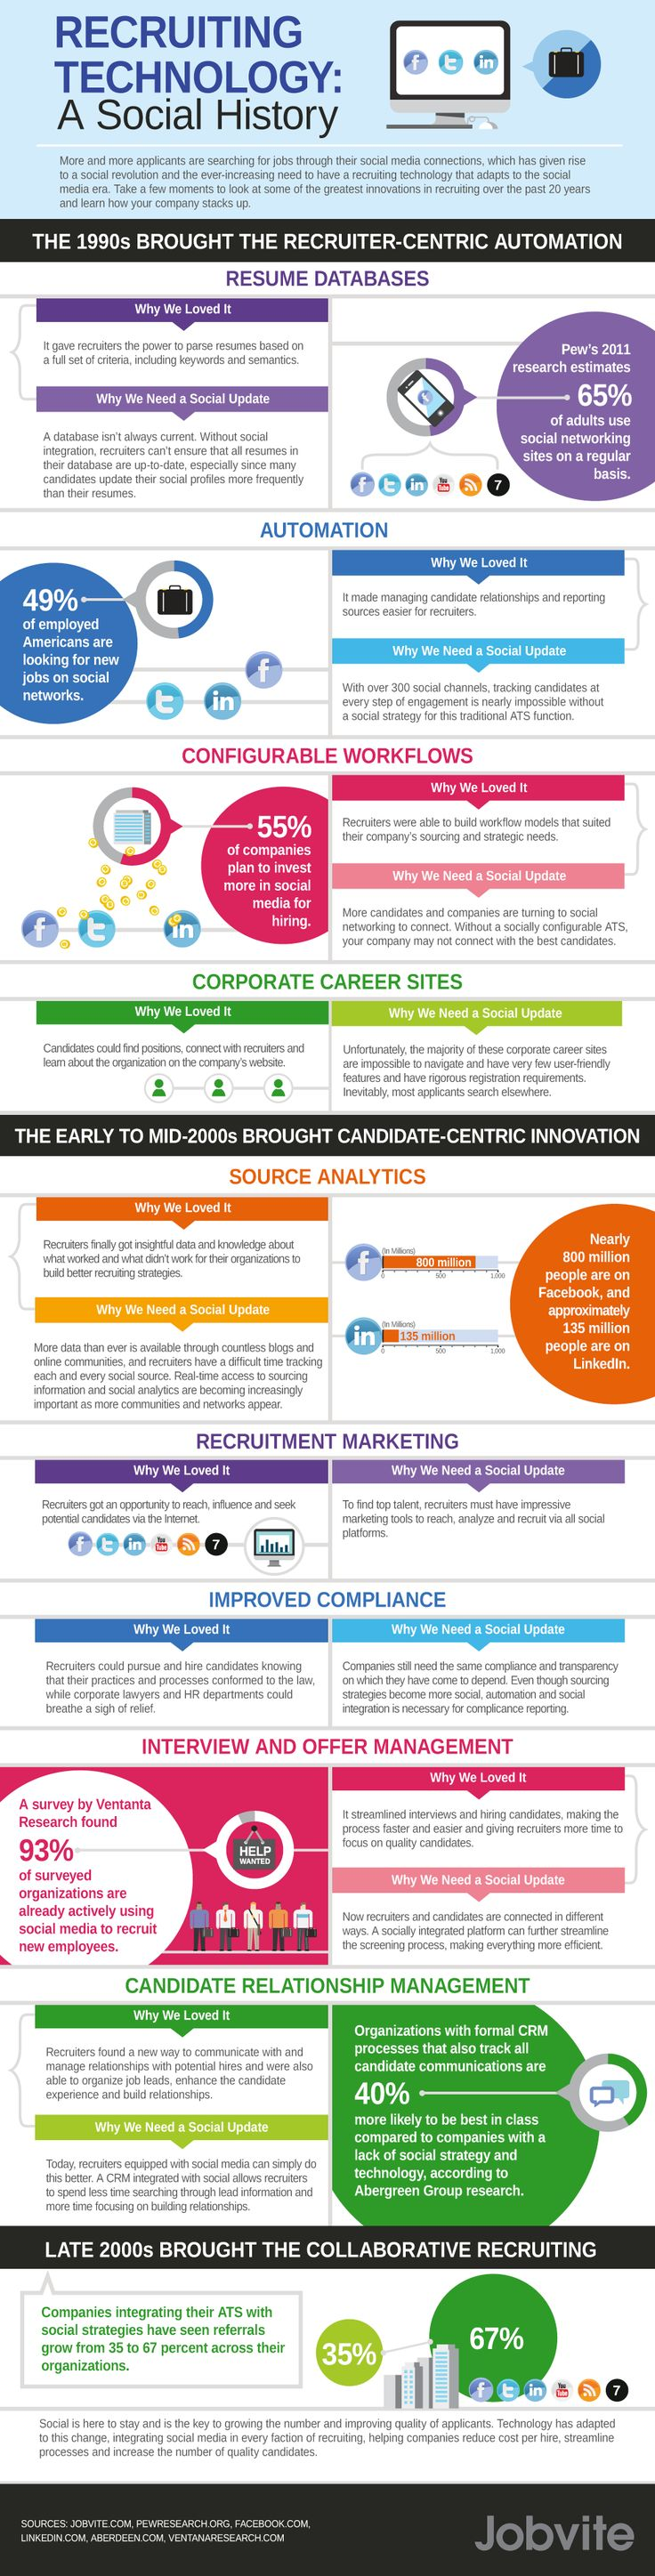 Recruiting Technology #infographic